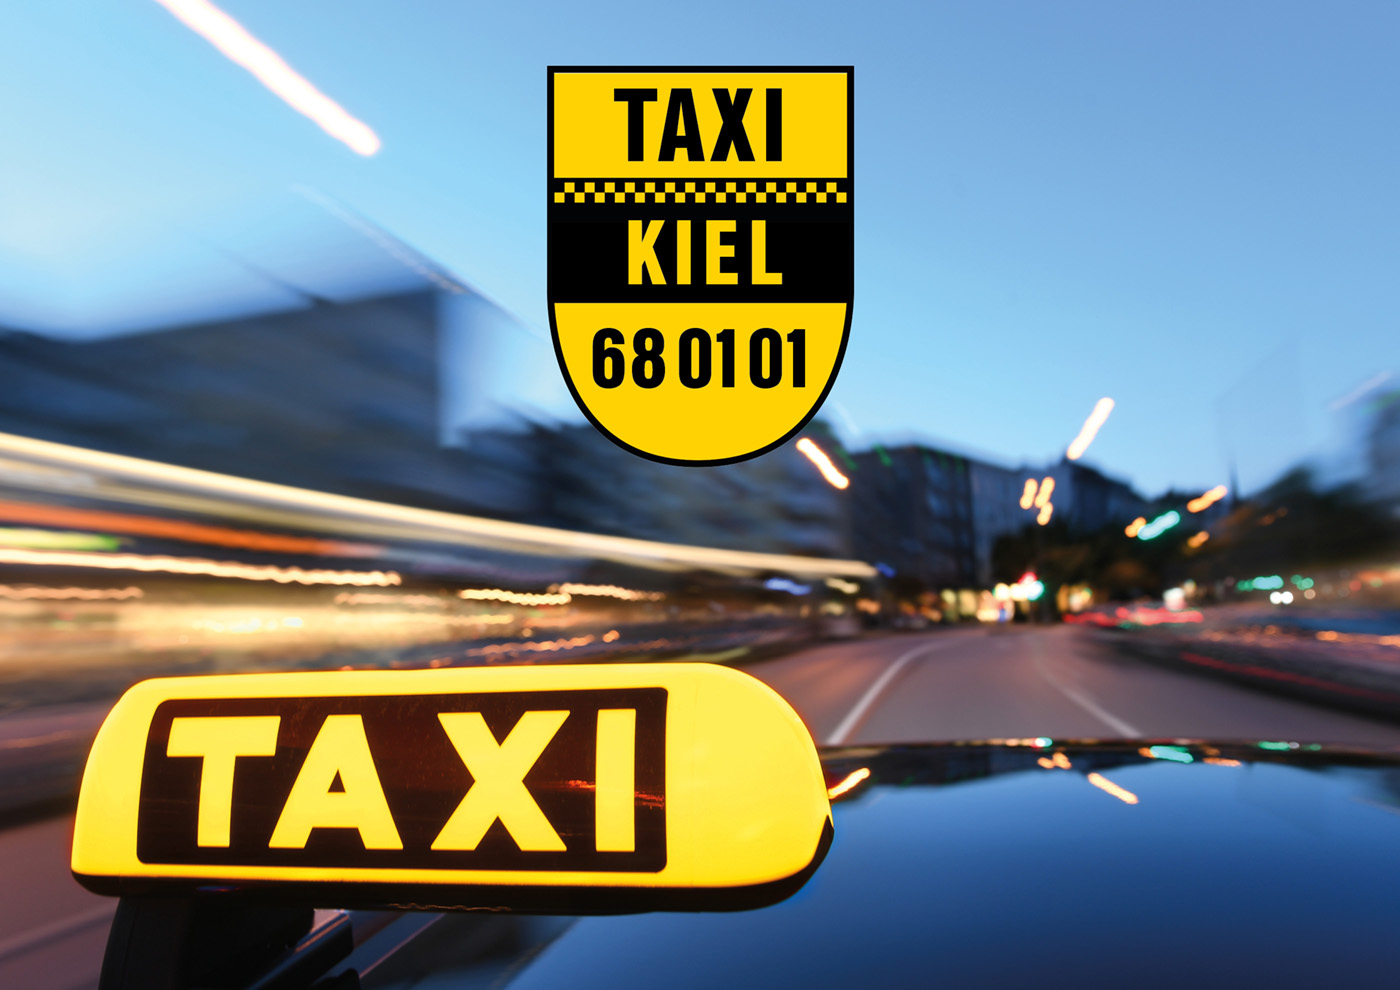 Web-Relaunch und Corporate Design für Taxi Kiel